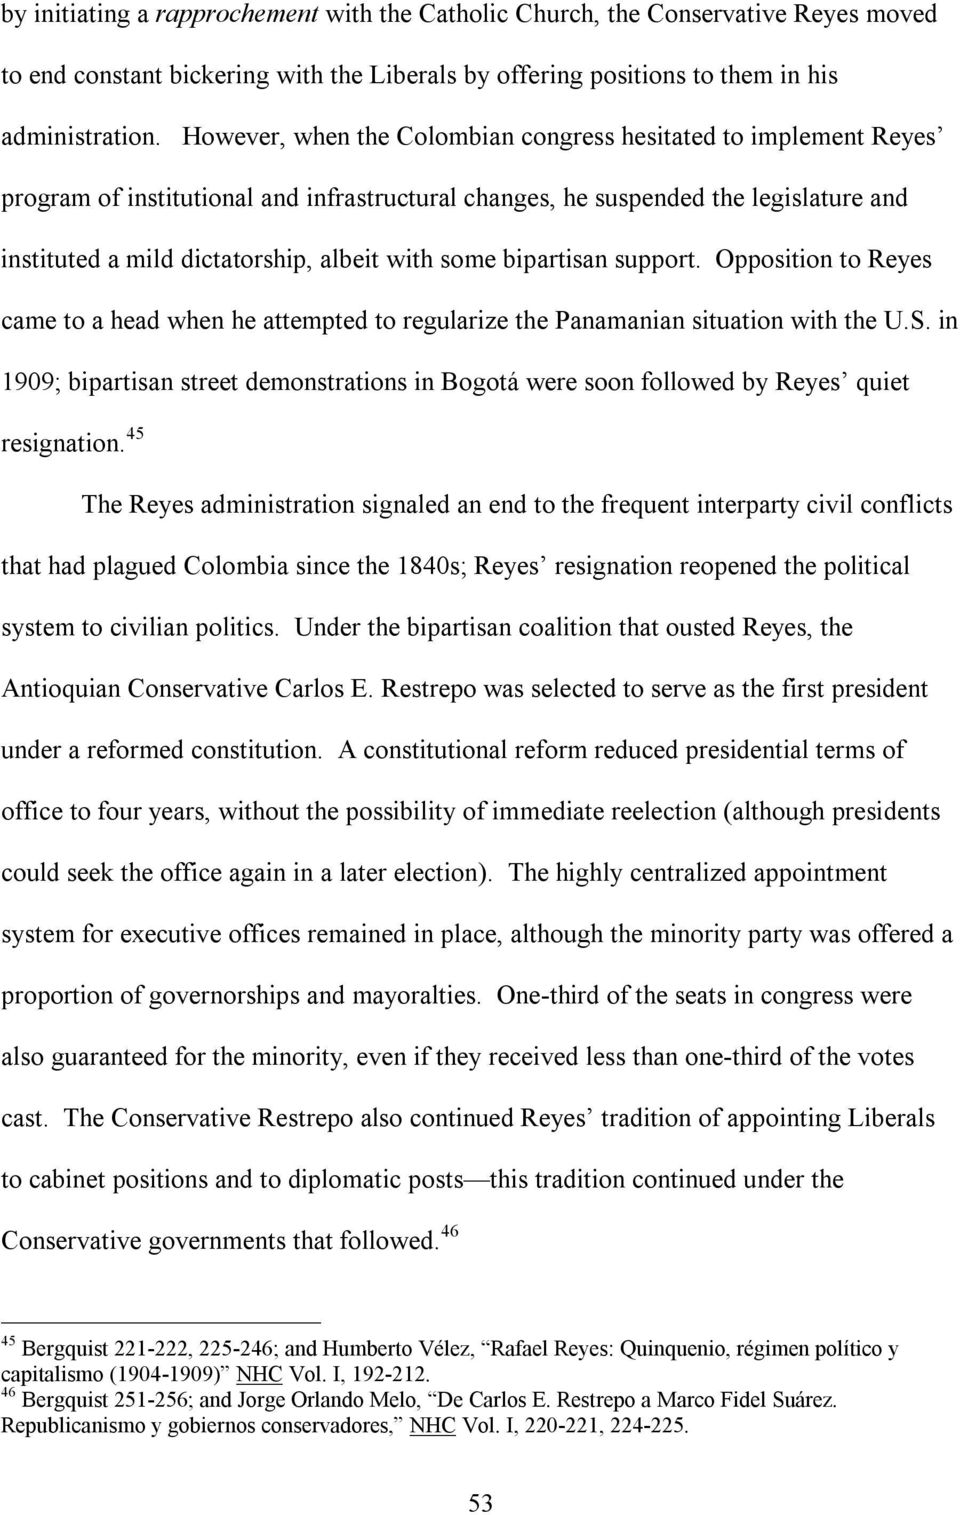 some bipartisan support. Opposition to Reyes came to a head when he attempted to regularize the Panamanian situation with the U.S.